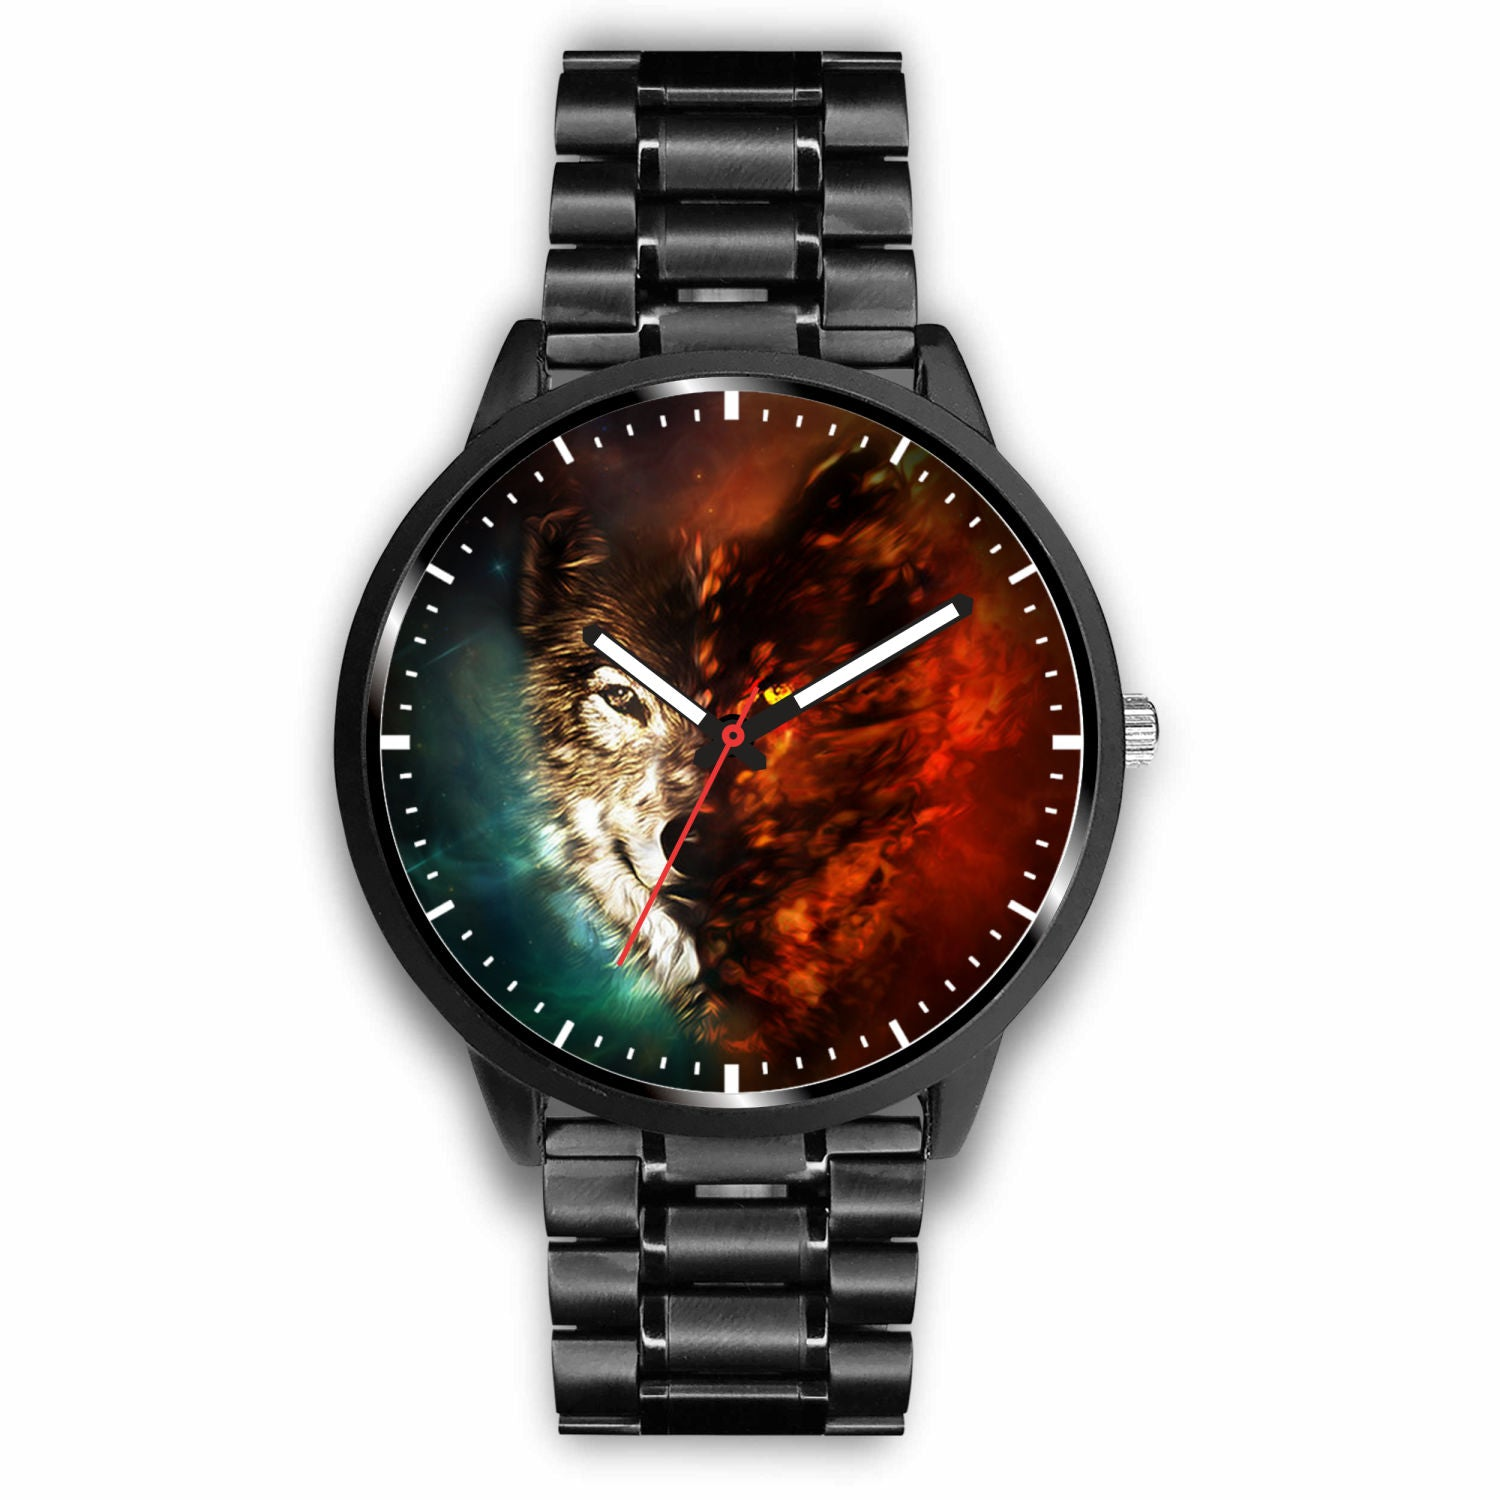 3D Ice and Fire Wolf Watch - Stainless steel back with leather/ stainless steel band 003 - designfullprint